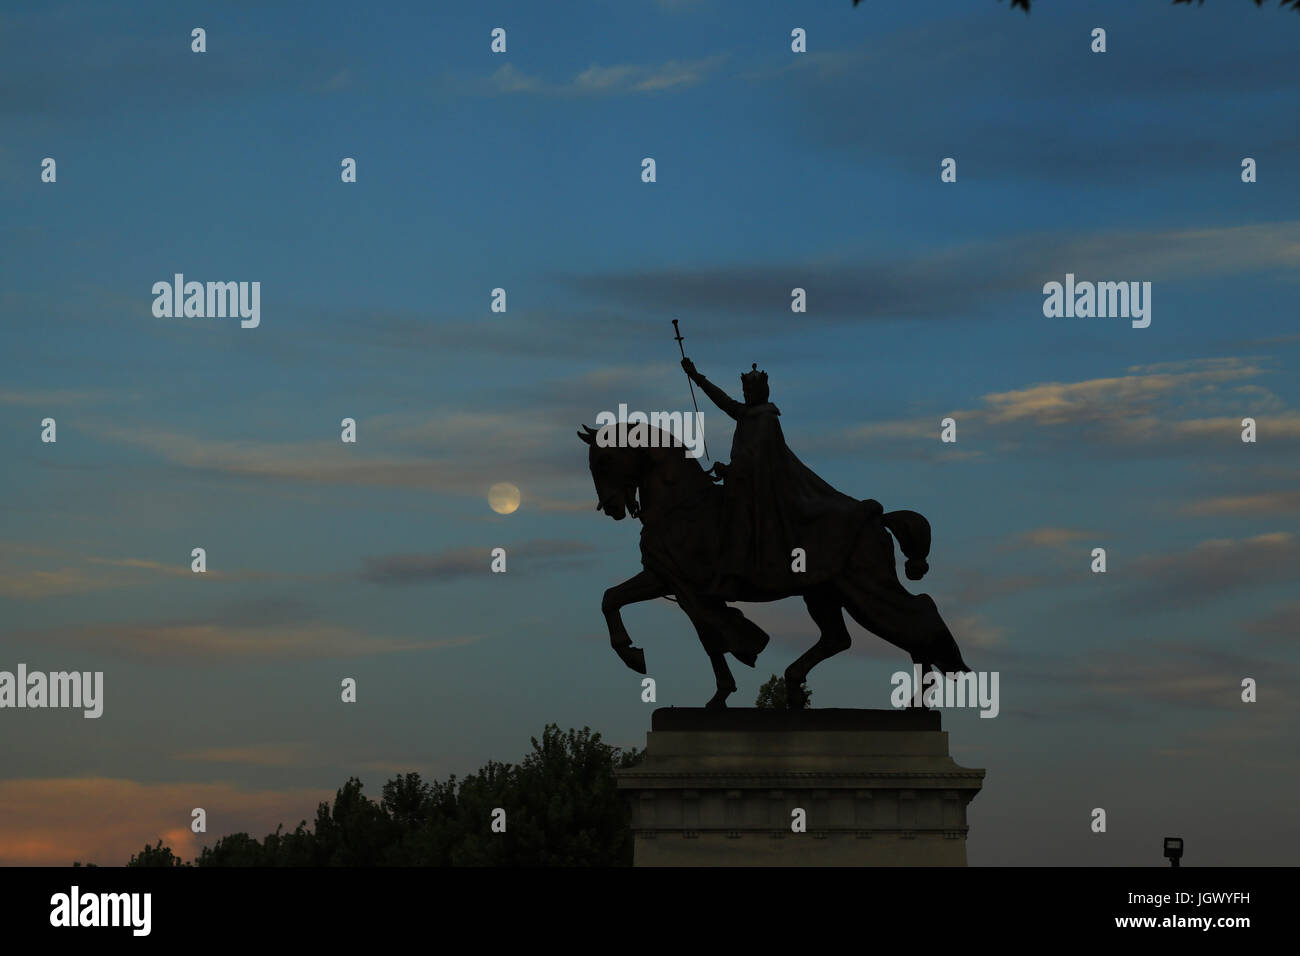 July 7, 2017 - St. Louis, Missouri - The sunset over the Apotheosis of St. Louis statue of King Louis IX of France, - Stock Image